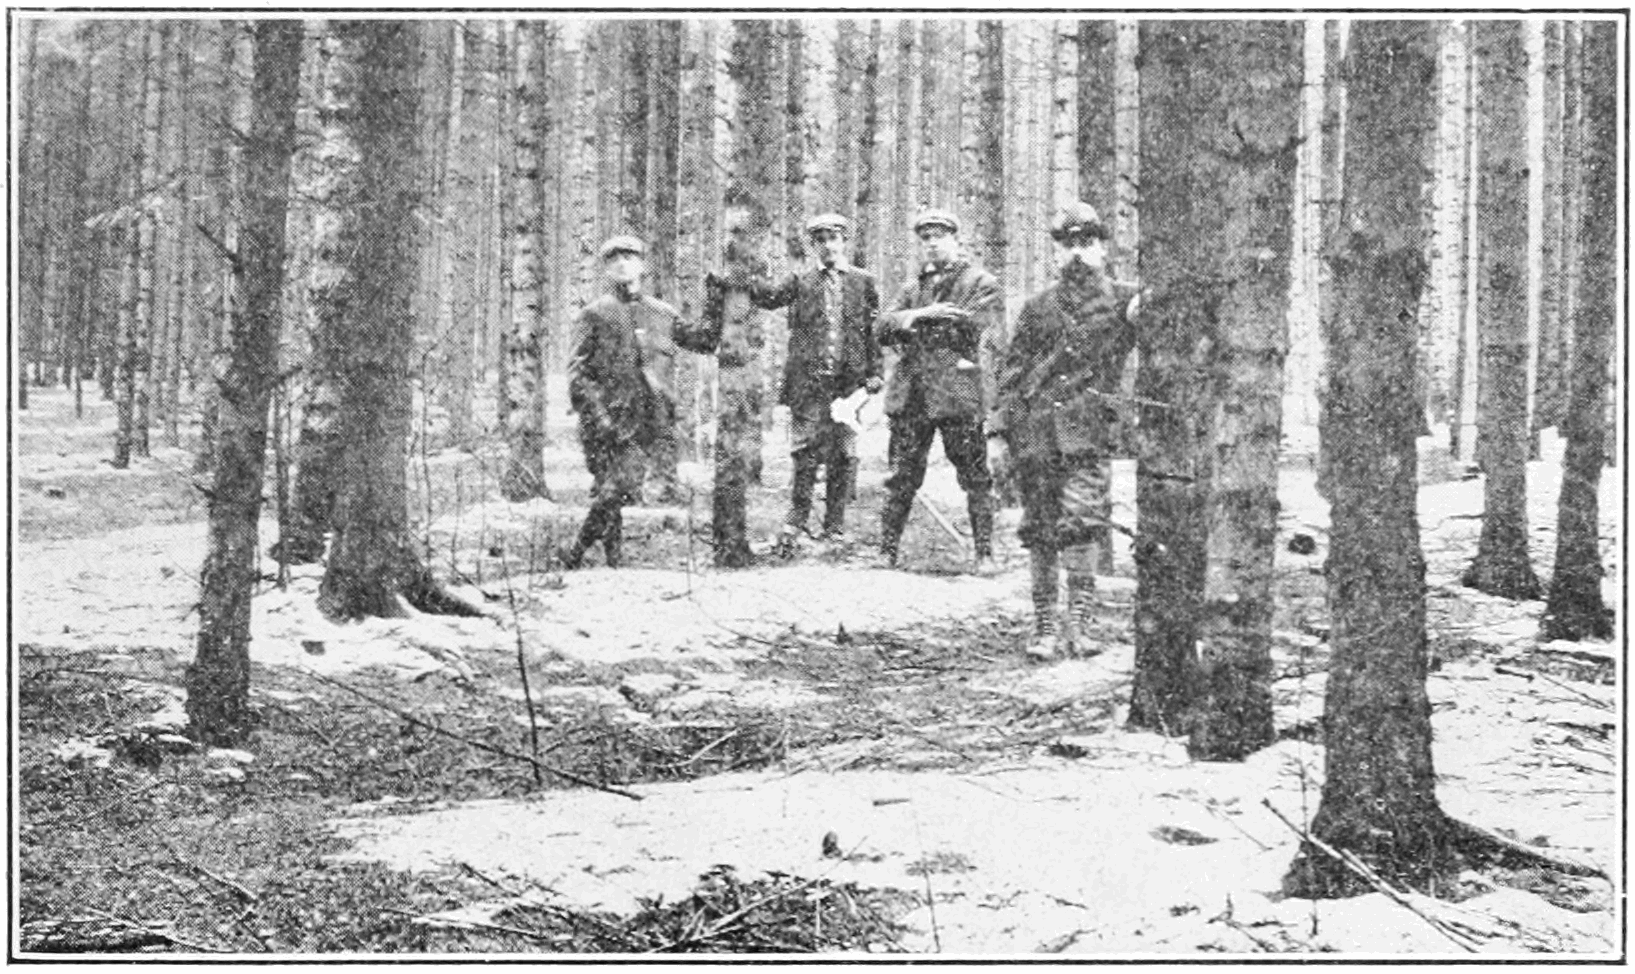 German foresters standing in a planted forest in 1913. Early German foresters planted neat rows of one or two species of trees to make it easier to keep track of and harvest timber. In doing so, however, they reduced biodiversity and made their forests more vulnerable to pests and disease. They also eliminated other trees and plants that had value to local communities for uses other than timber. When we focus only on making things legible, we risk sacrificing usefulness for legibility and doing long-term harm. (See Scott, Chapter 1.)